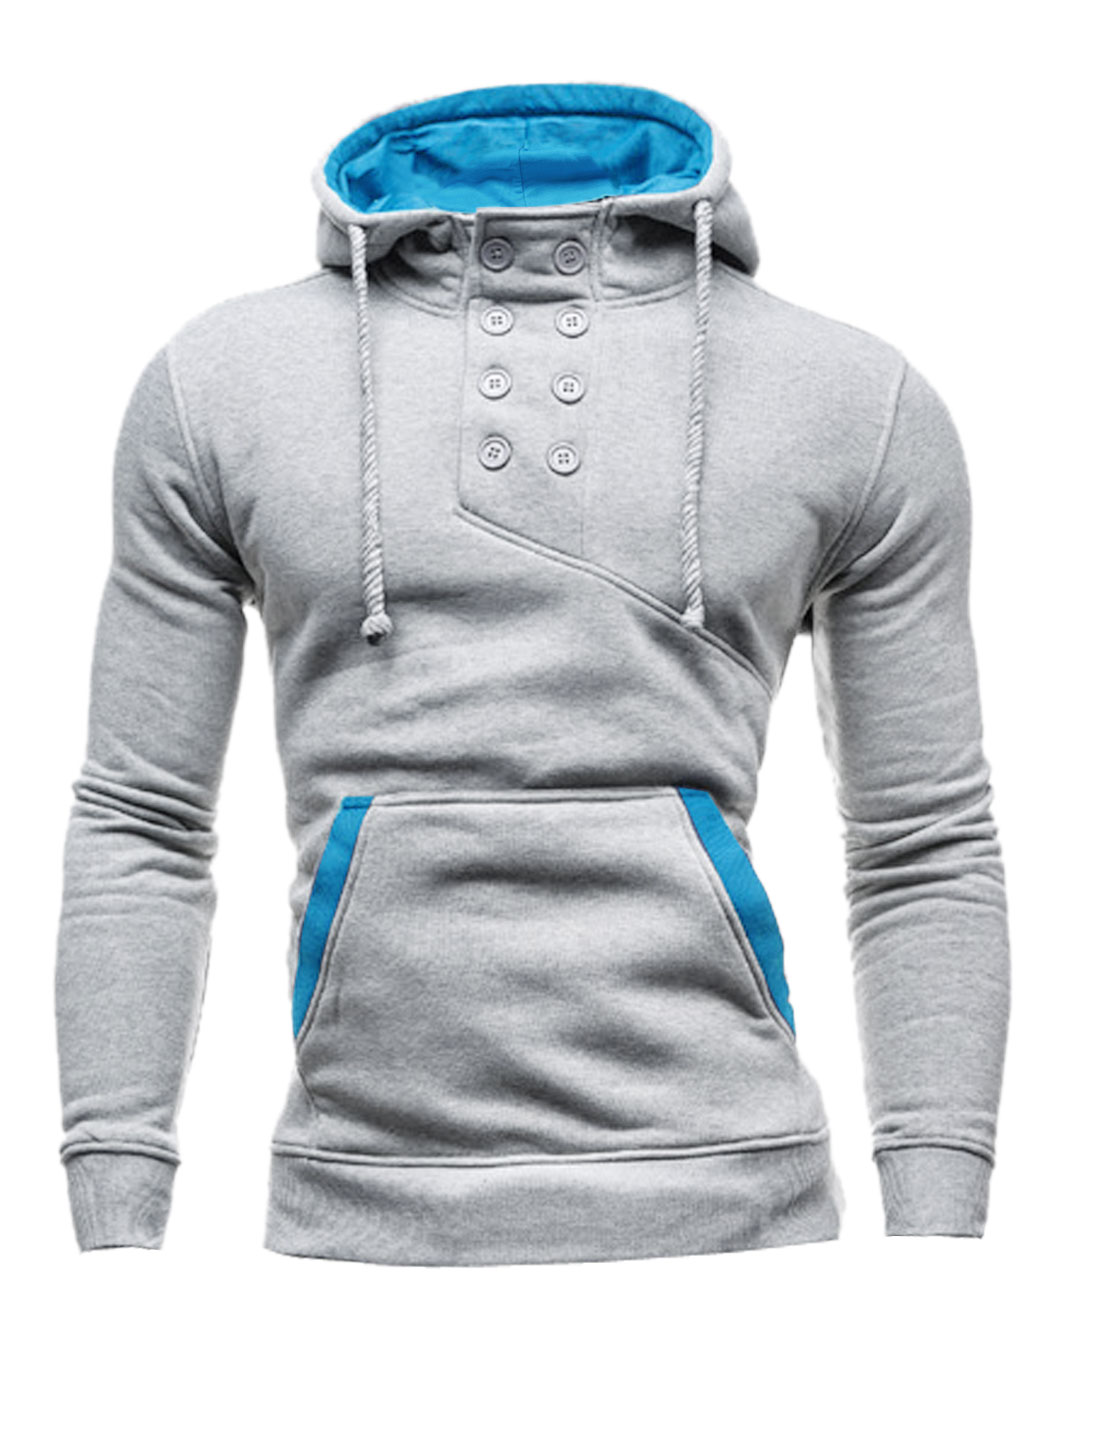 Men Double Breasted Upper Kangaroo Pocket Drawstring Hoodie Light Gray M